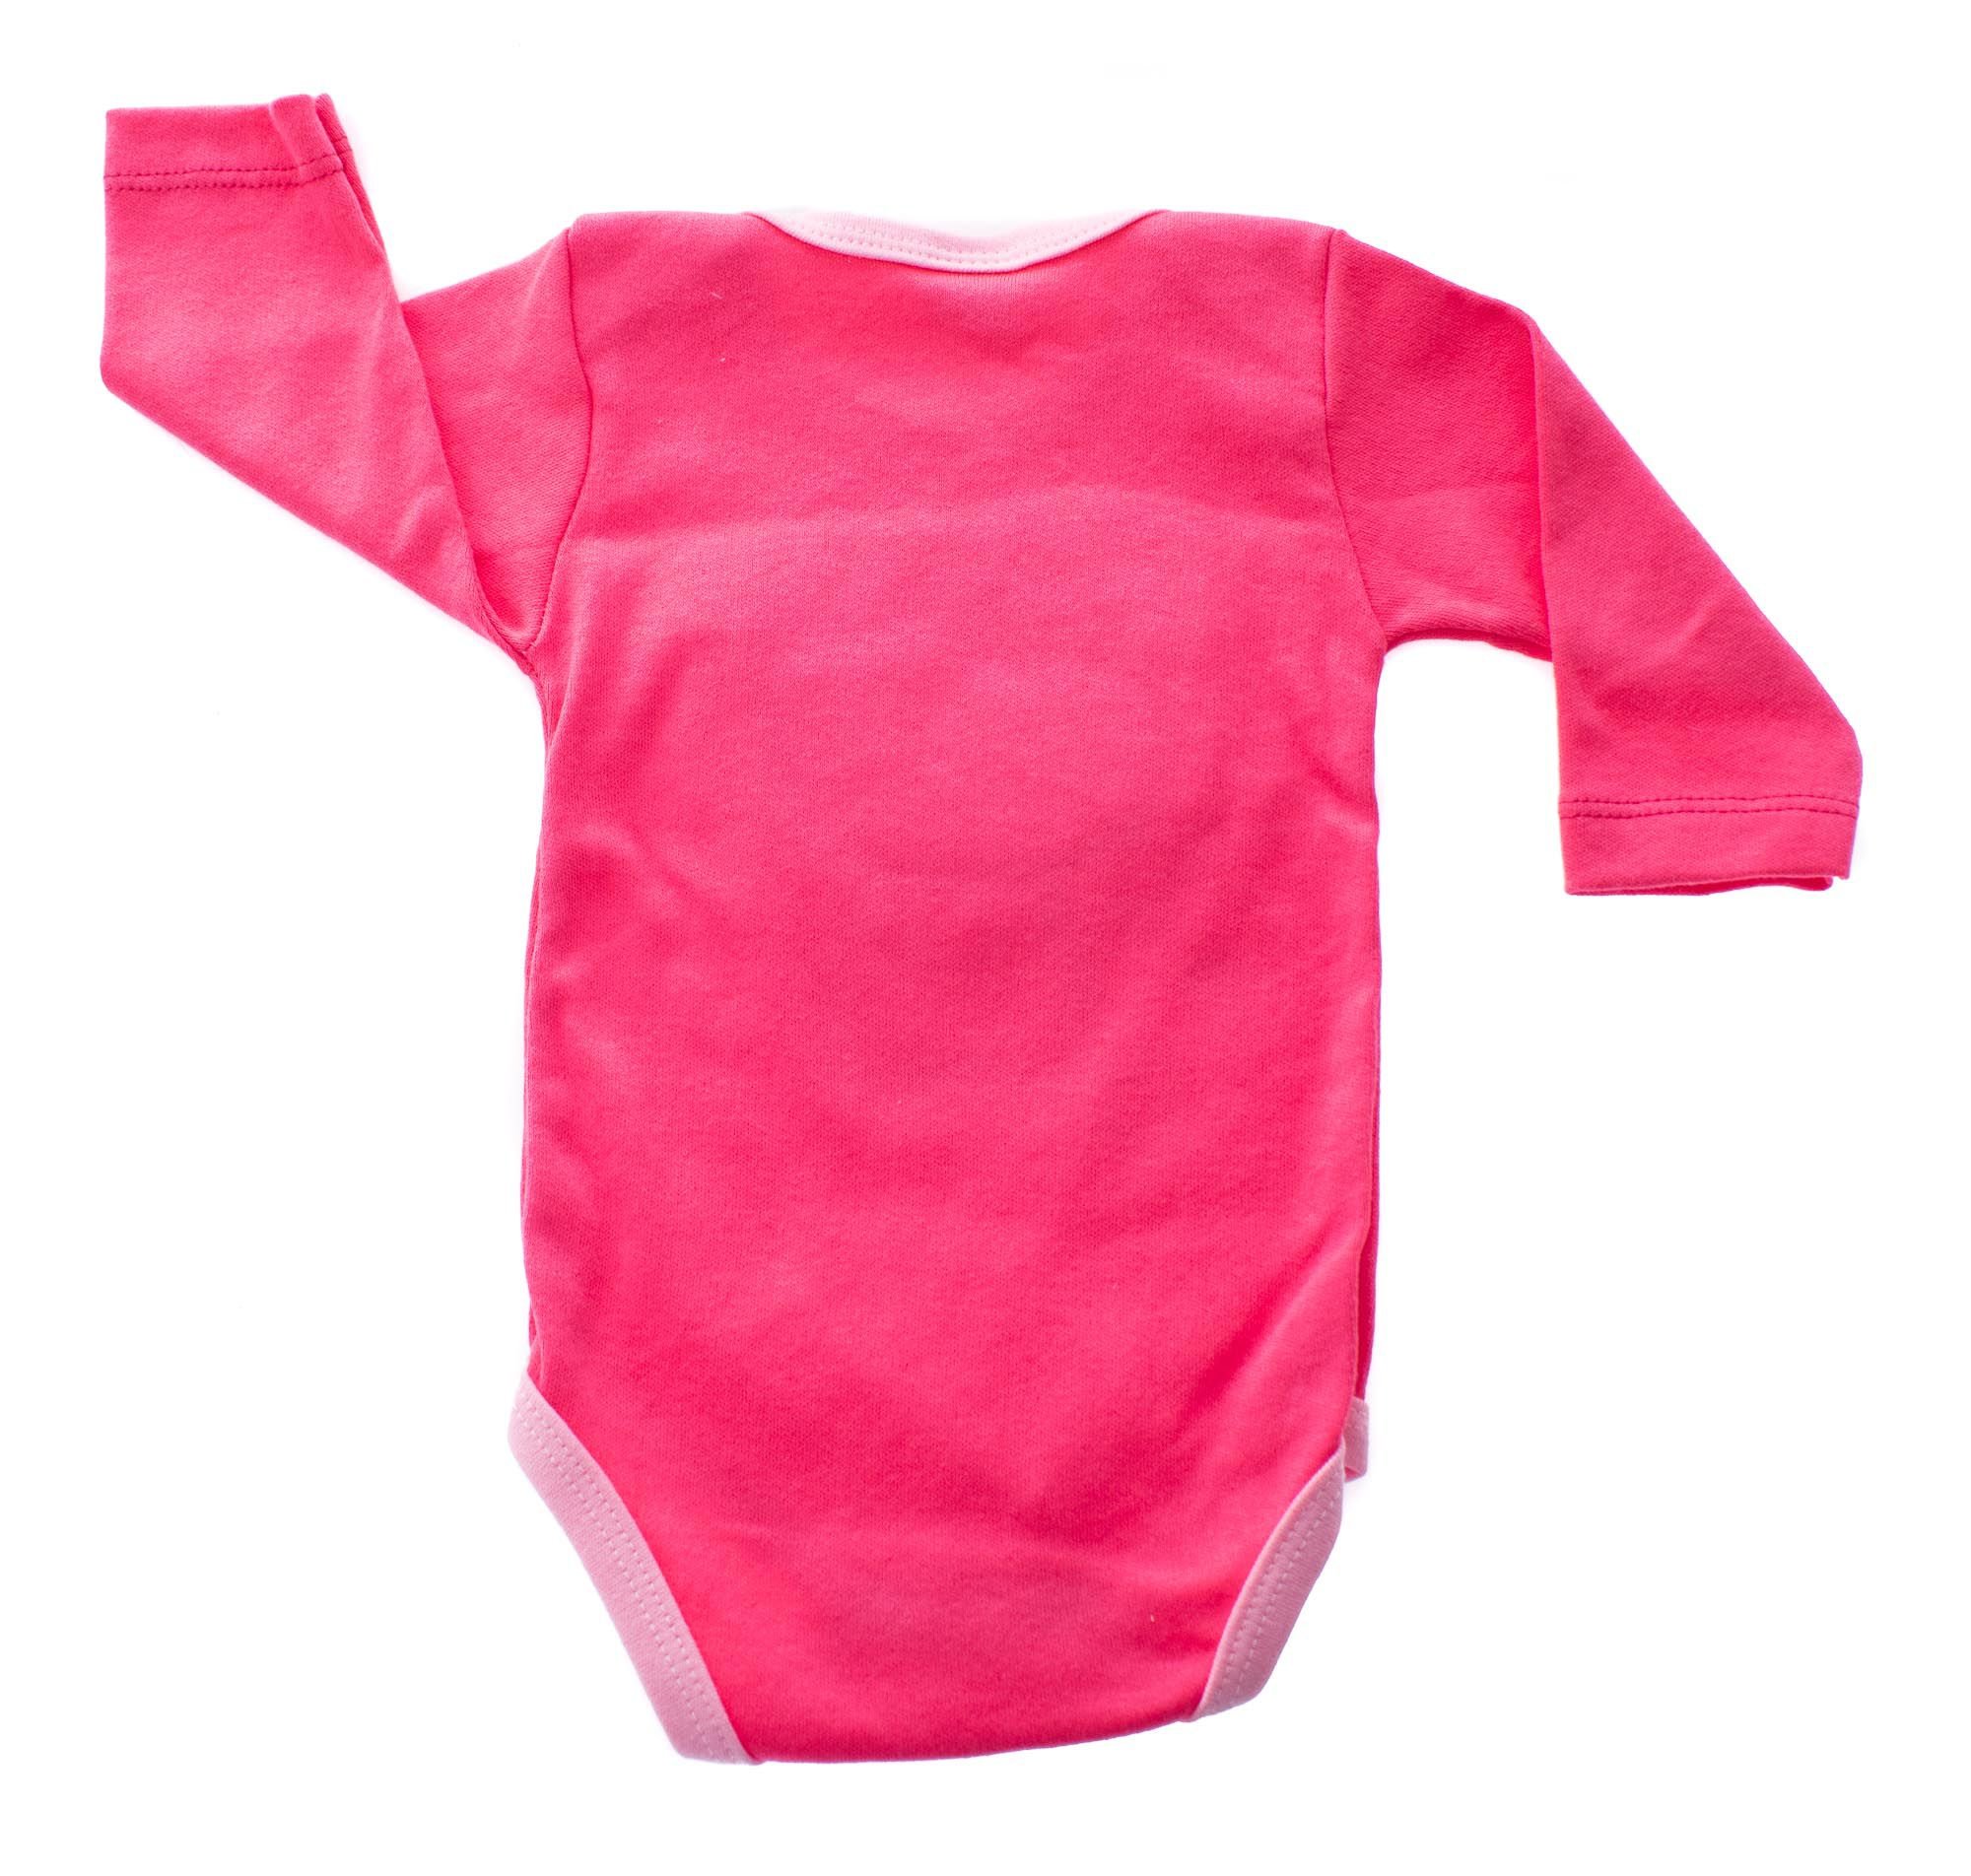 Kit Body Bebê com Turbante Rosa